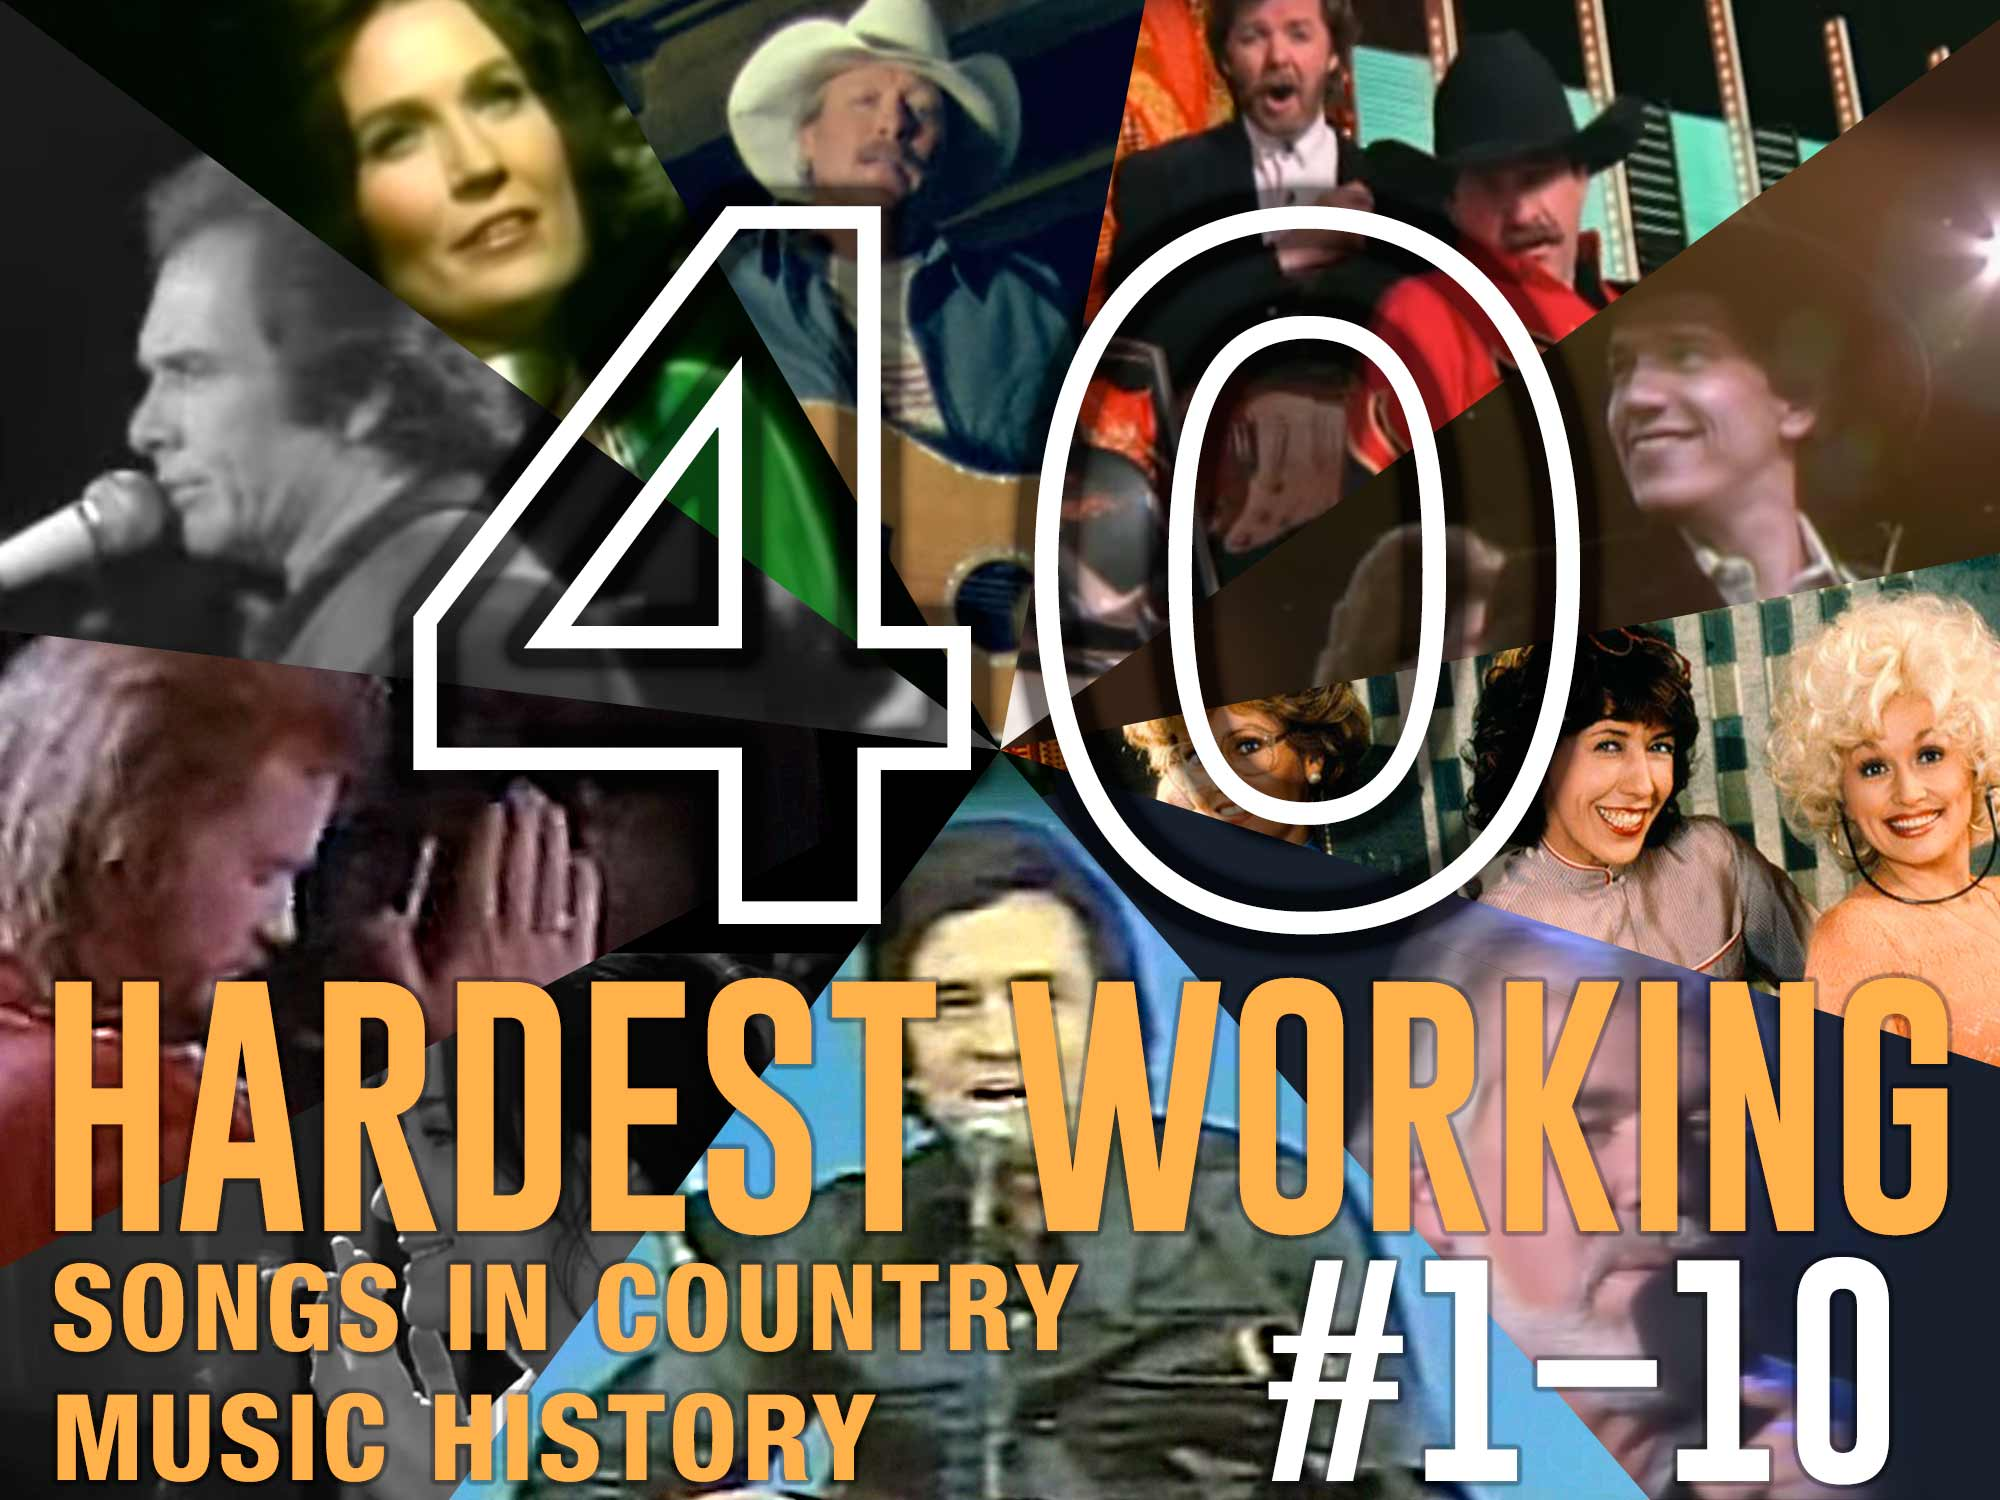 In Honor of Labor Day, the 40 Hardest Working Songs in Country Music History: #1–10